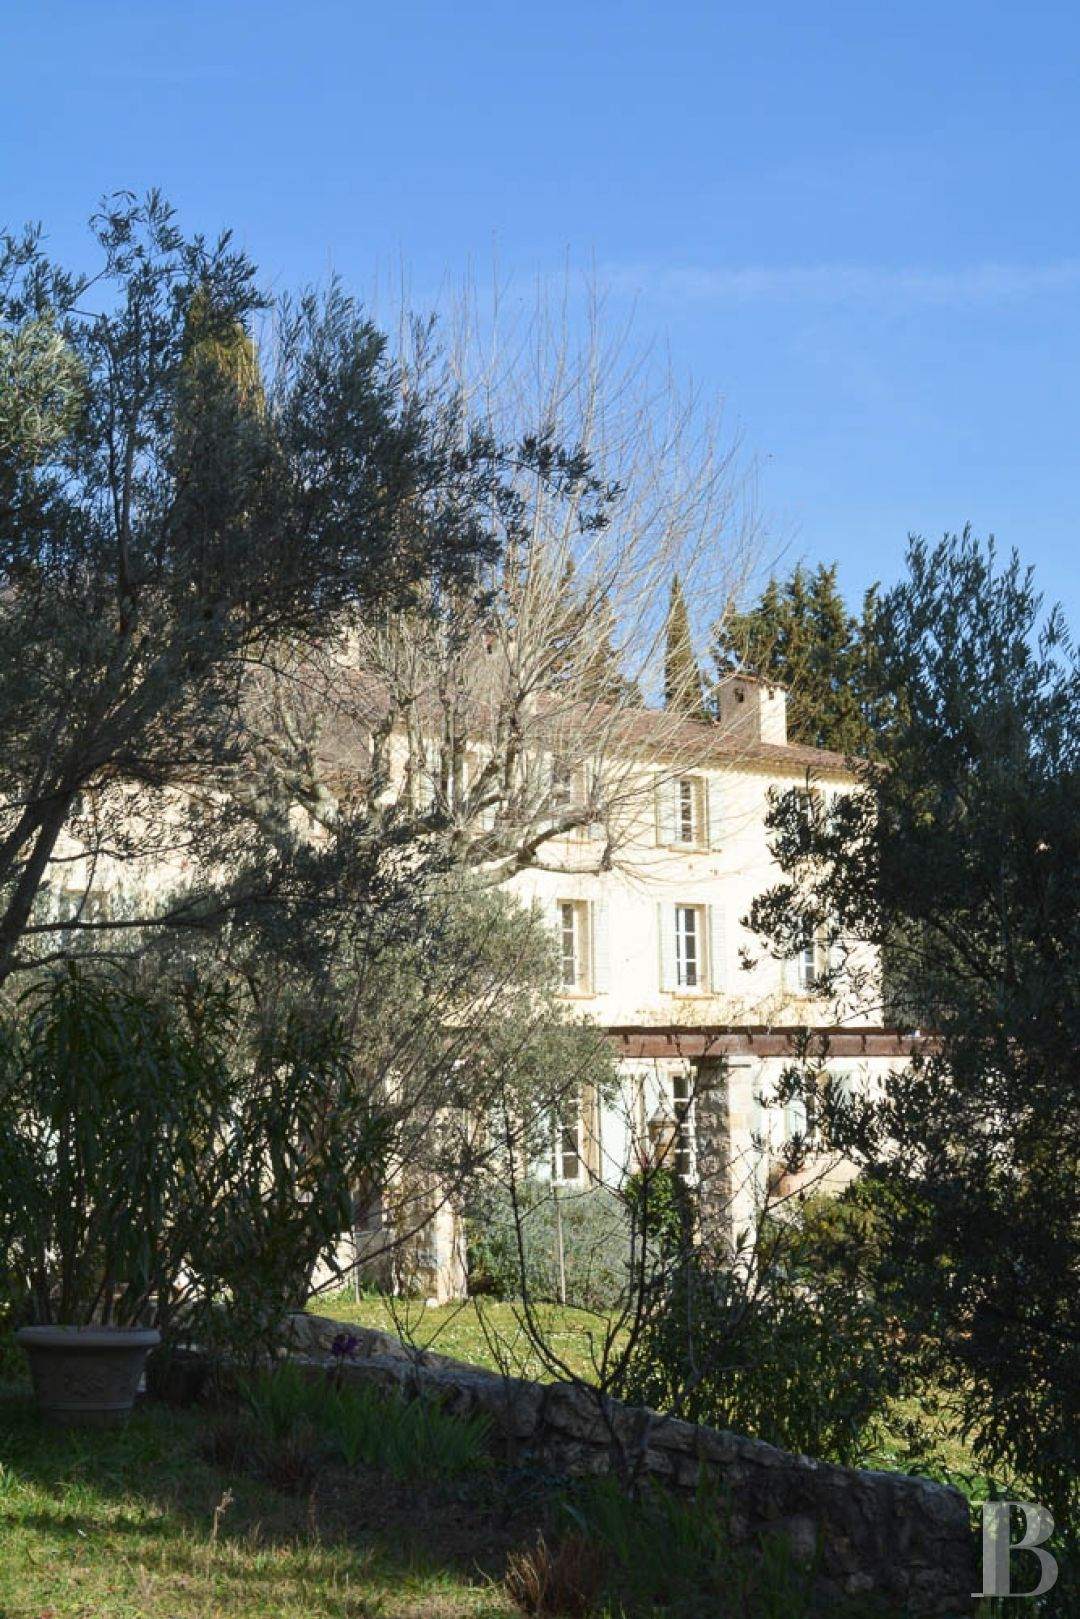 property for sale France provence cote dazur residences traditional - 3 zoom